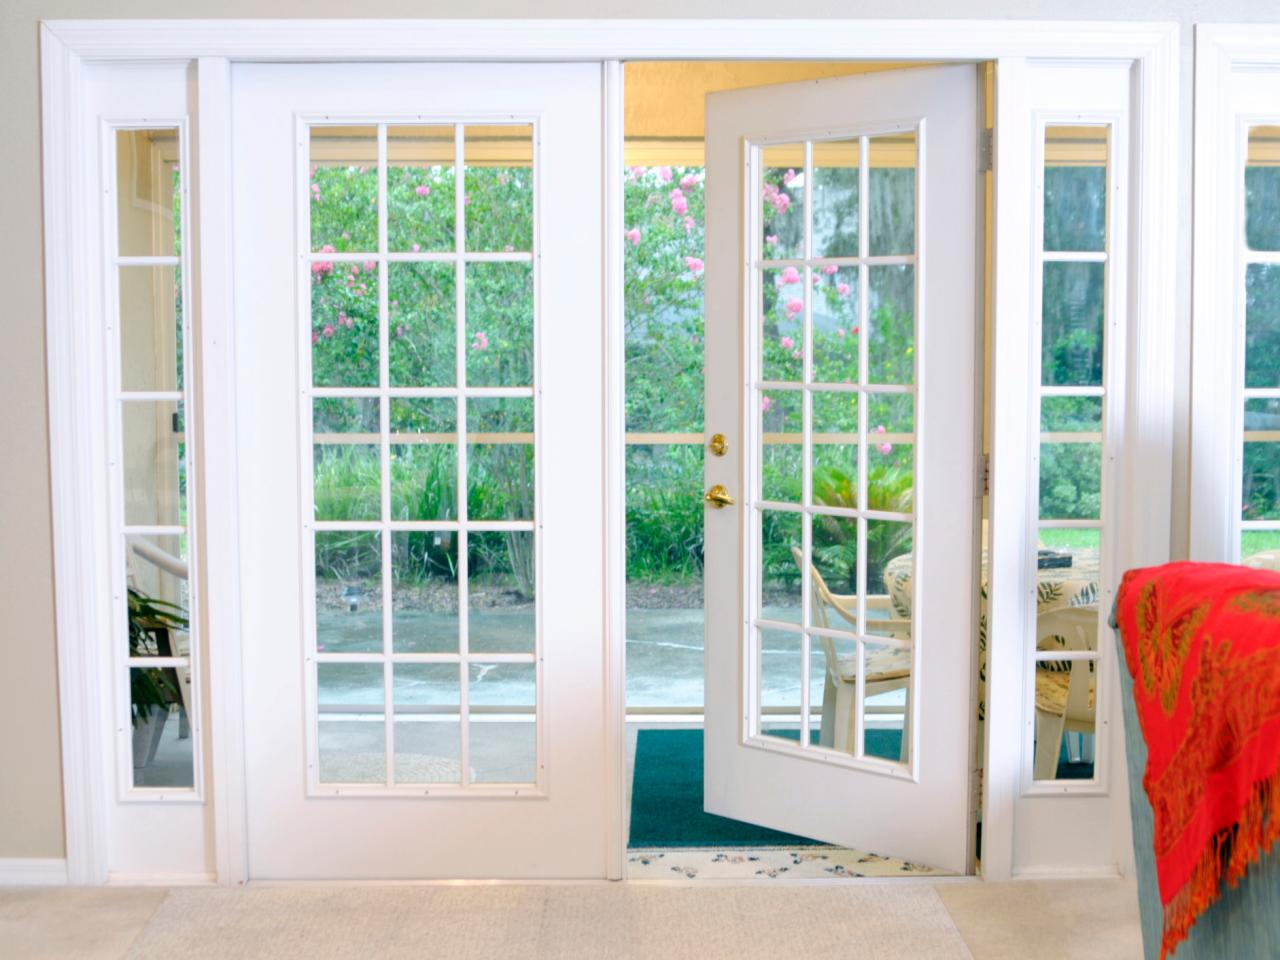 Knoxville patio doors north knox siding and windows for Patio doors with windows that open